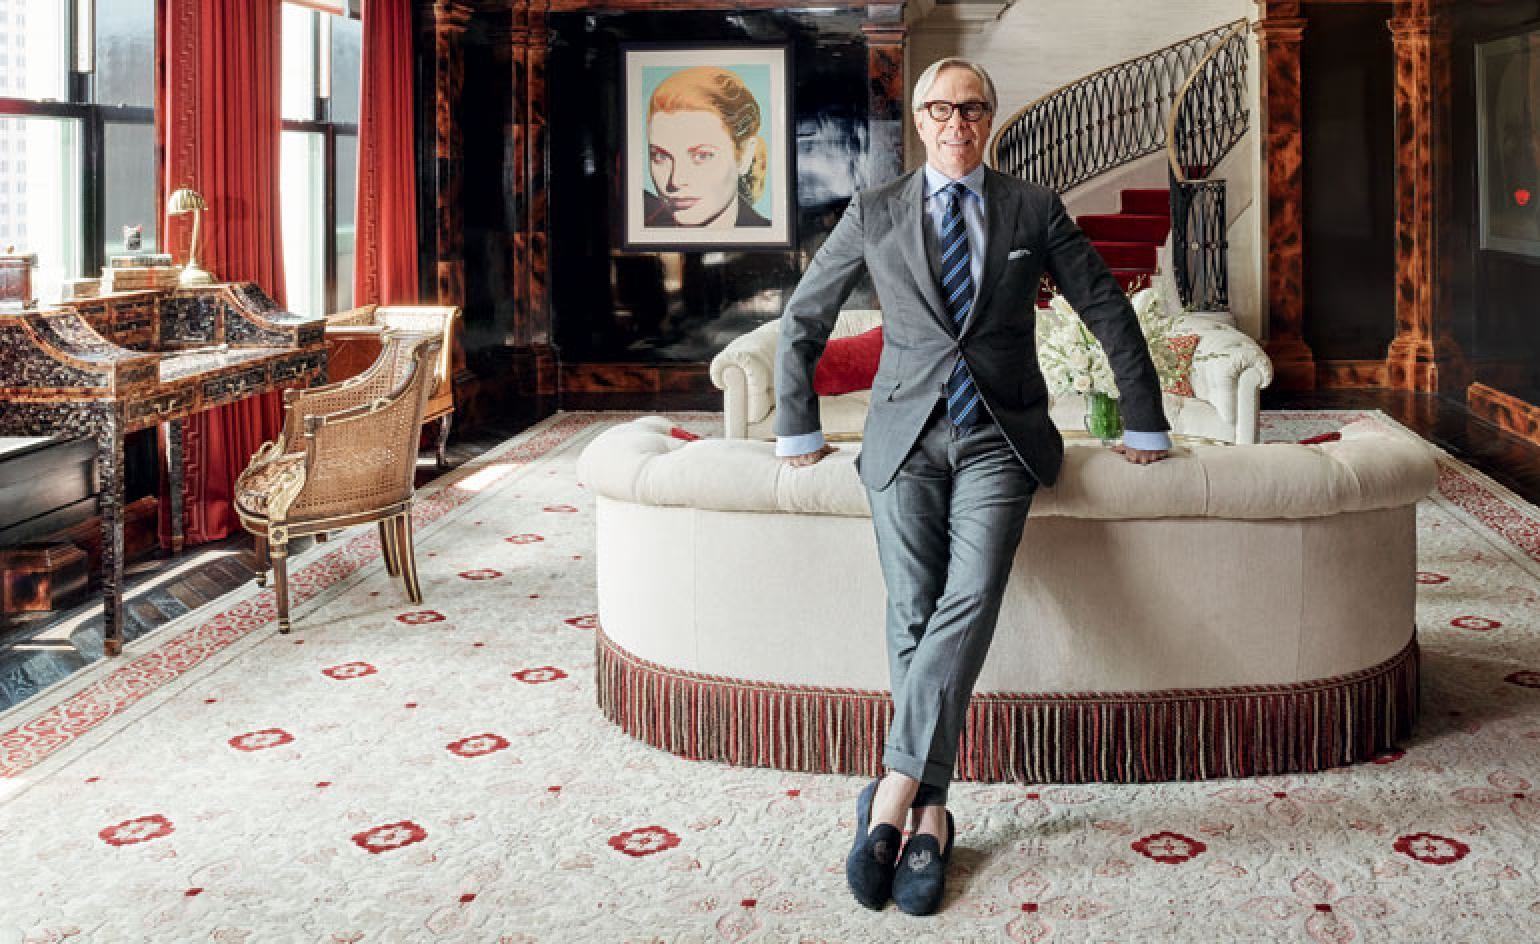 Tommy Hilfiger Sells Plaza Hotel Penthouse to Auto Tycoon for $31.25 Million